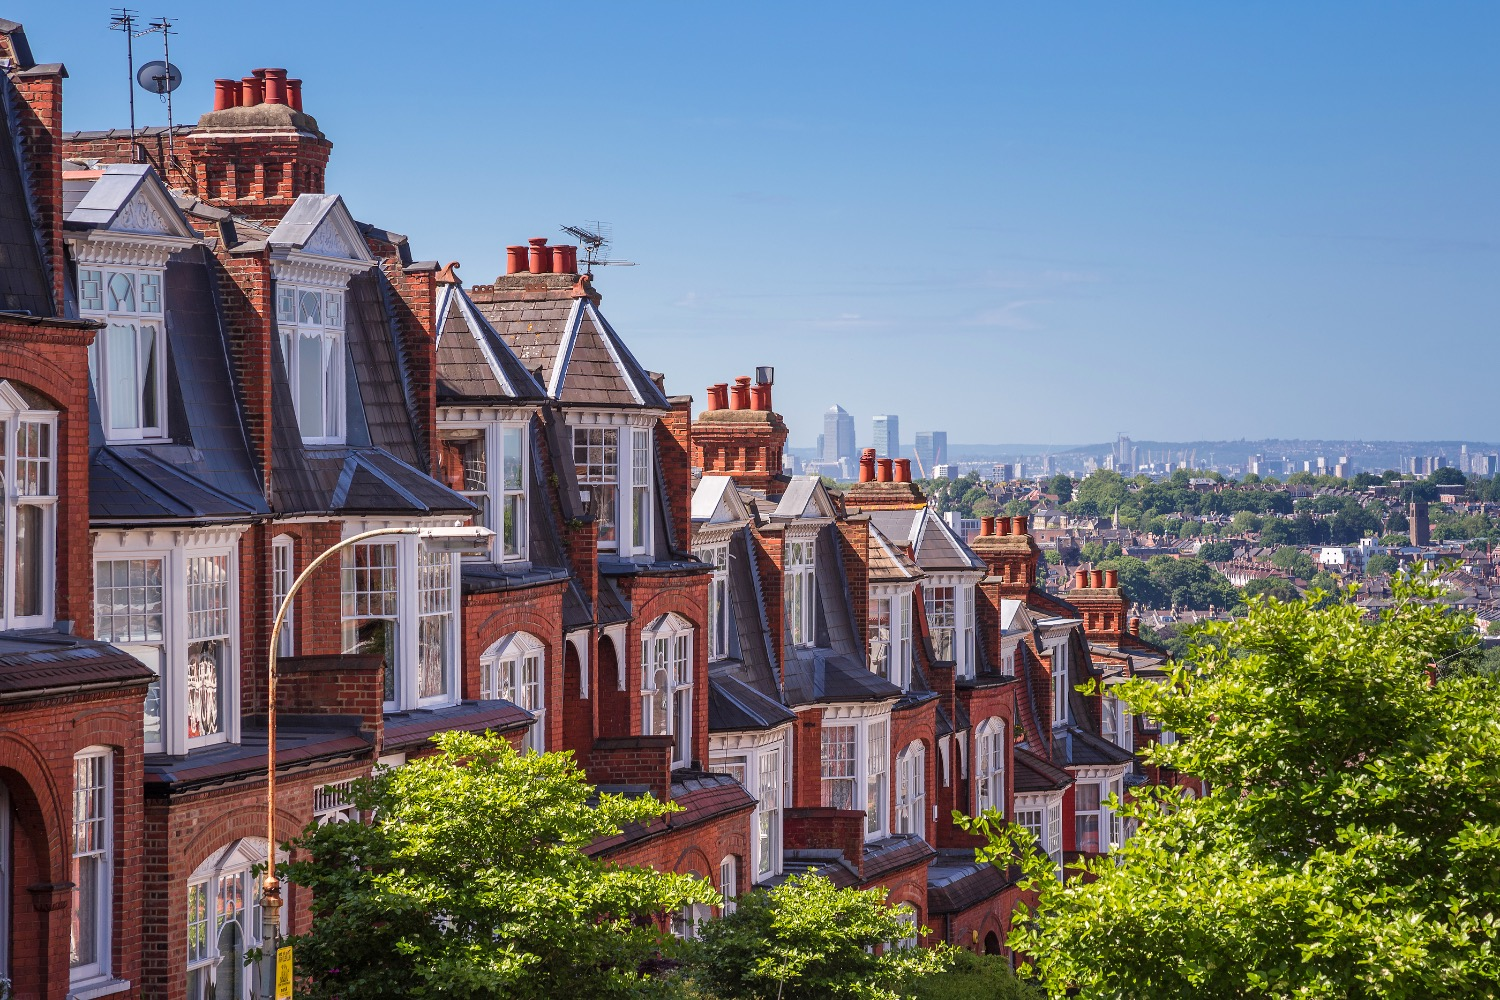 Brick houses of Muswell Hill and panorama of London with Canary Wharf, London, UK_edited